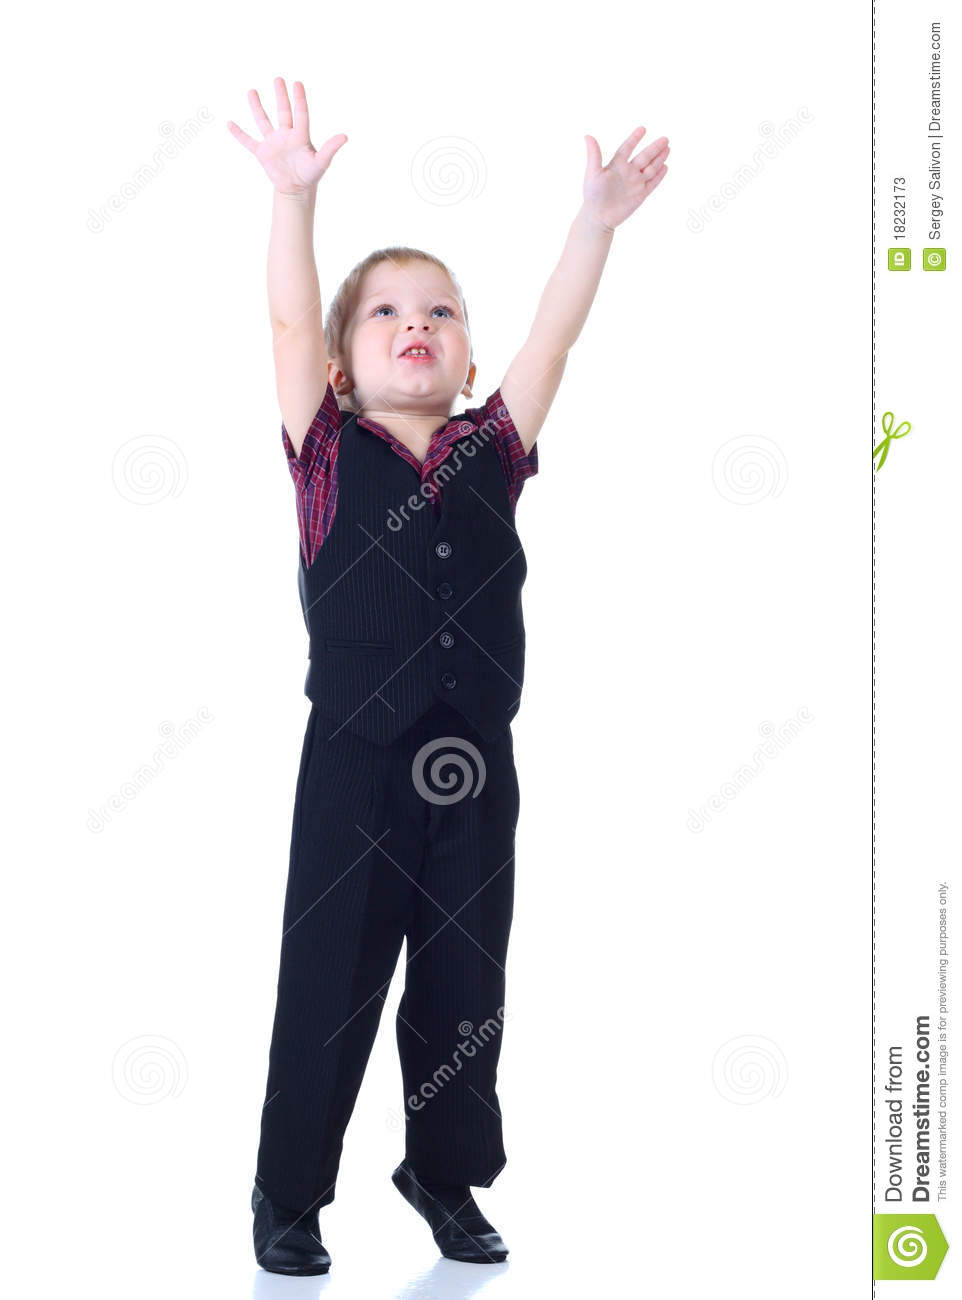 More similar stock images of ` Little boy move hands up `